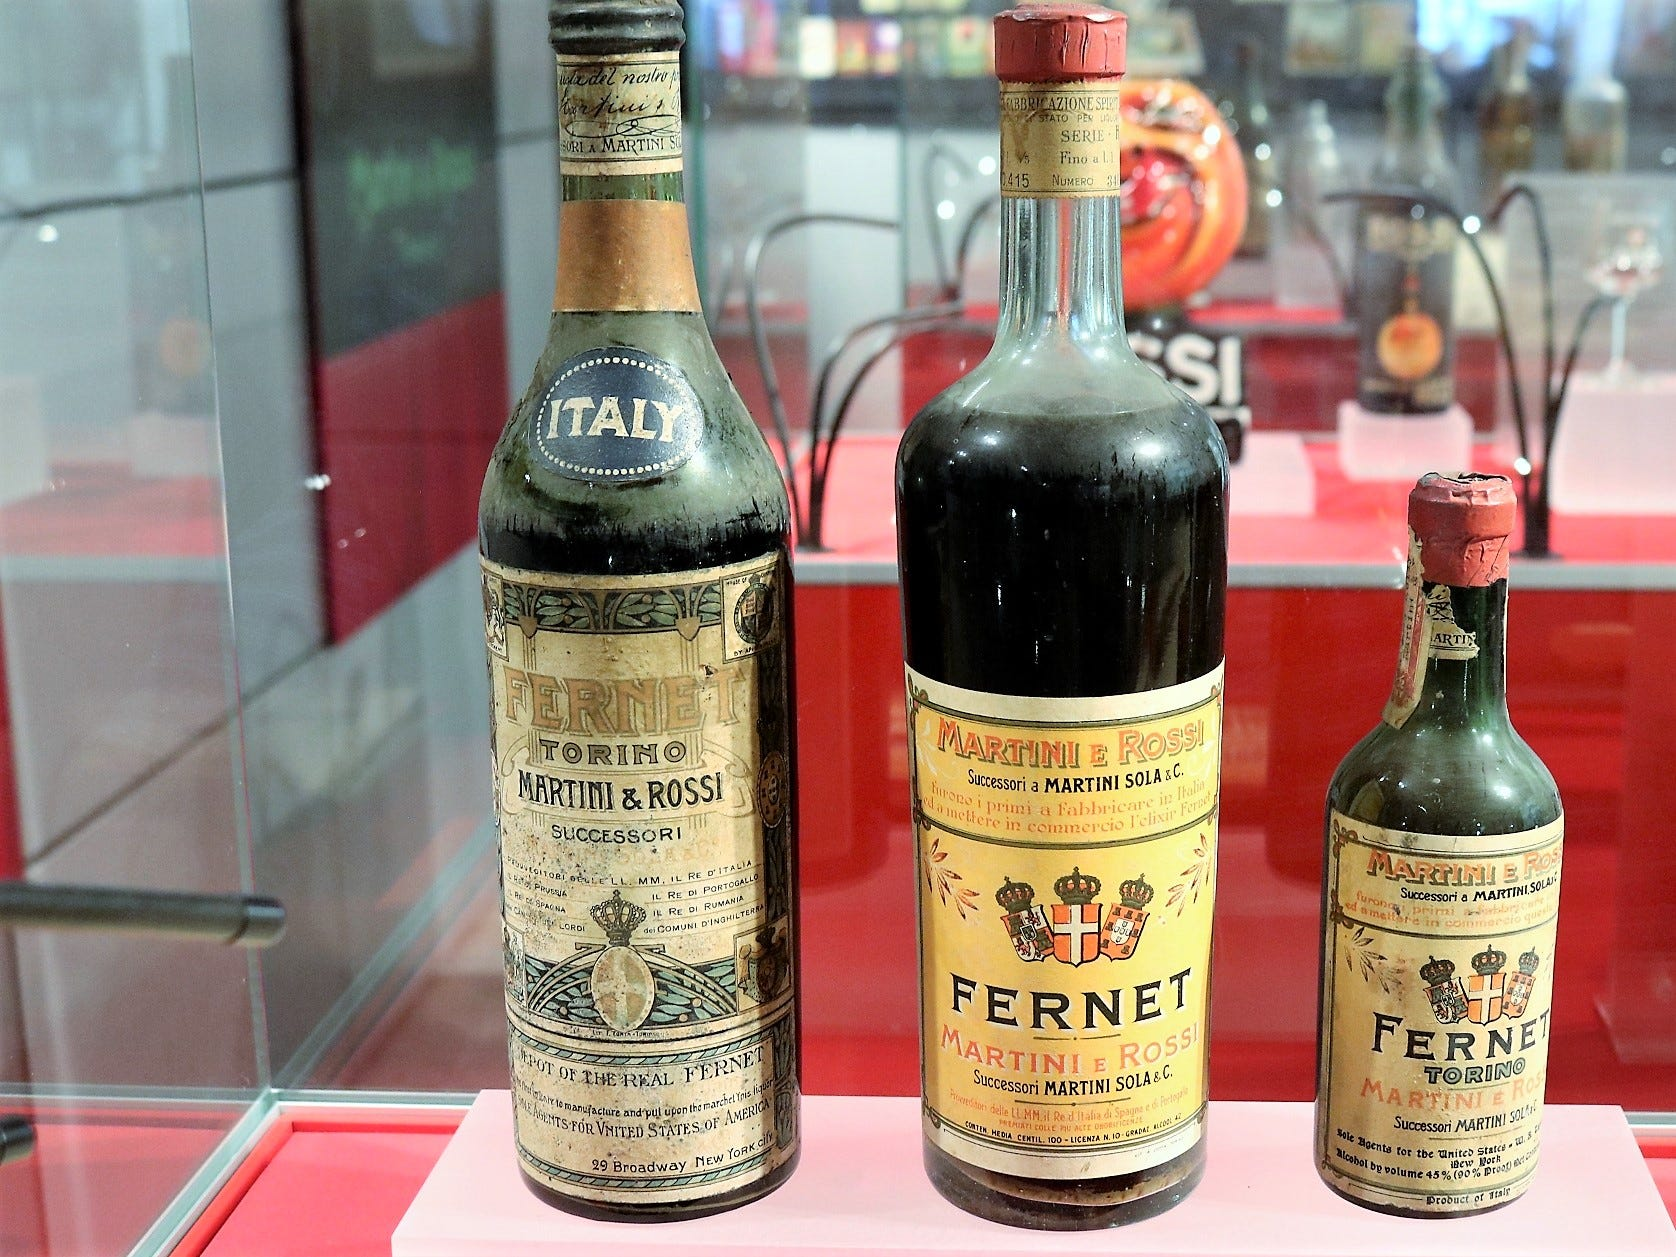 Martini & Rossi today is synonymous with vermouth. The company used to make a wider range of products, including fernet, a bitter amaro.